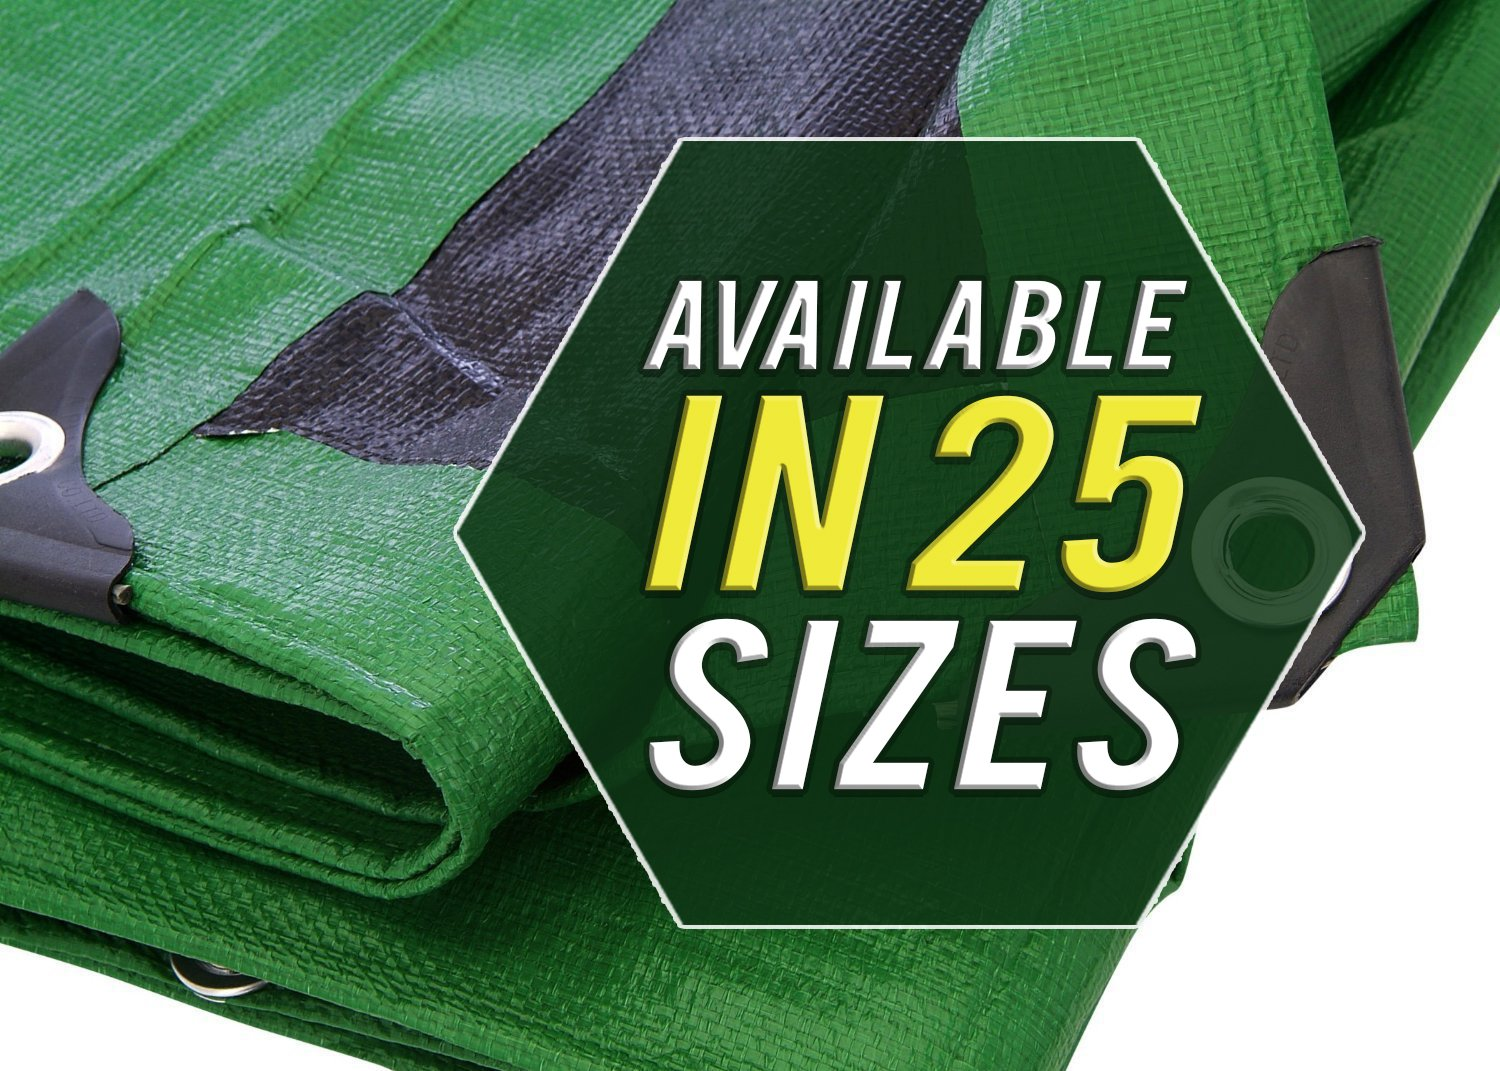 Trademark Supplies Heavy Duty Thick Material Waterproof Tarp Cover 20X30-Feet Green/Black - - Amazon.com & Trademark Supplies Heavy Duty Thick Material Waterproof Tarp Cover ...